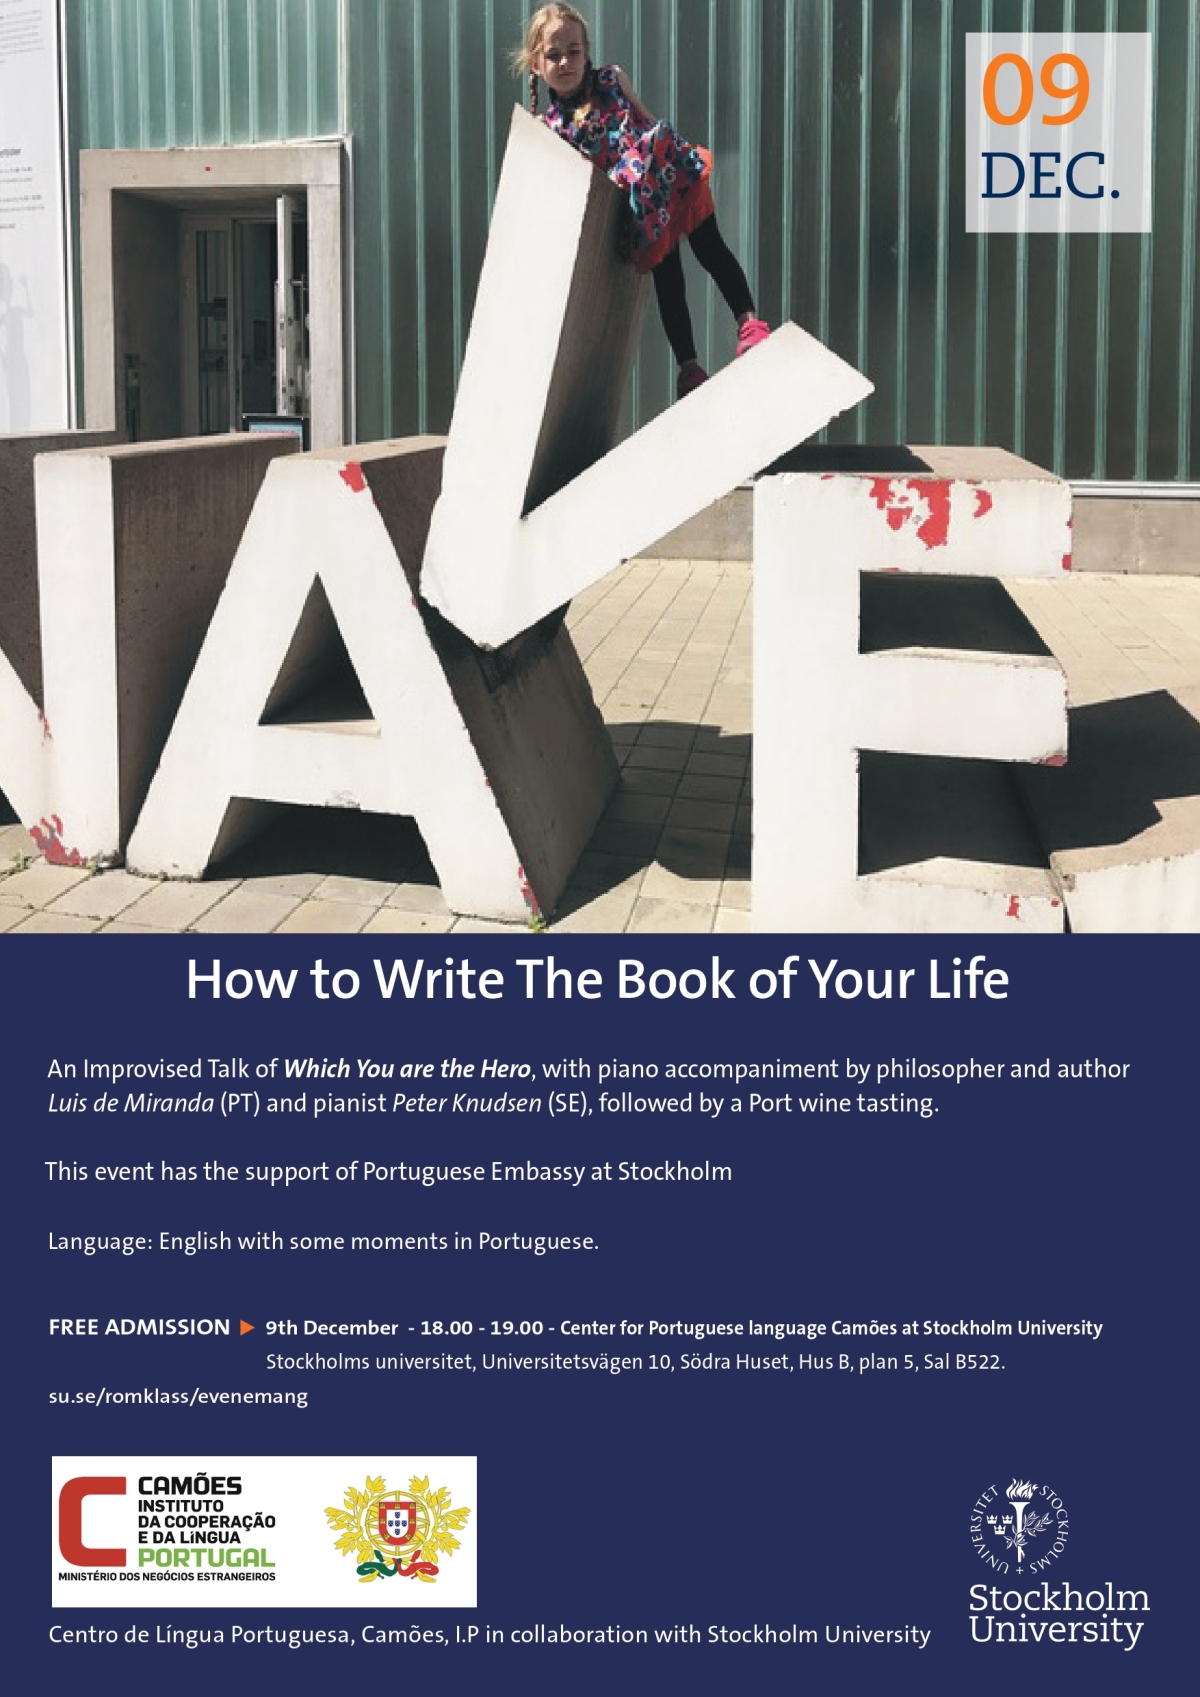 How to Write The Book of Your Life, An Improvised Musical Talk